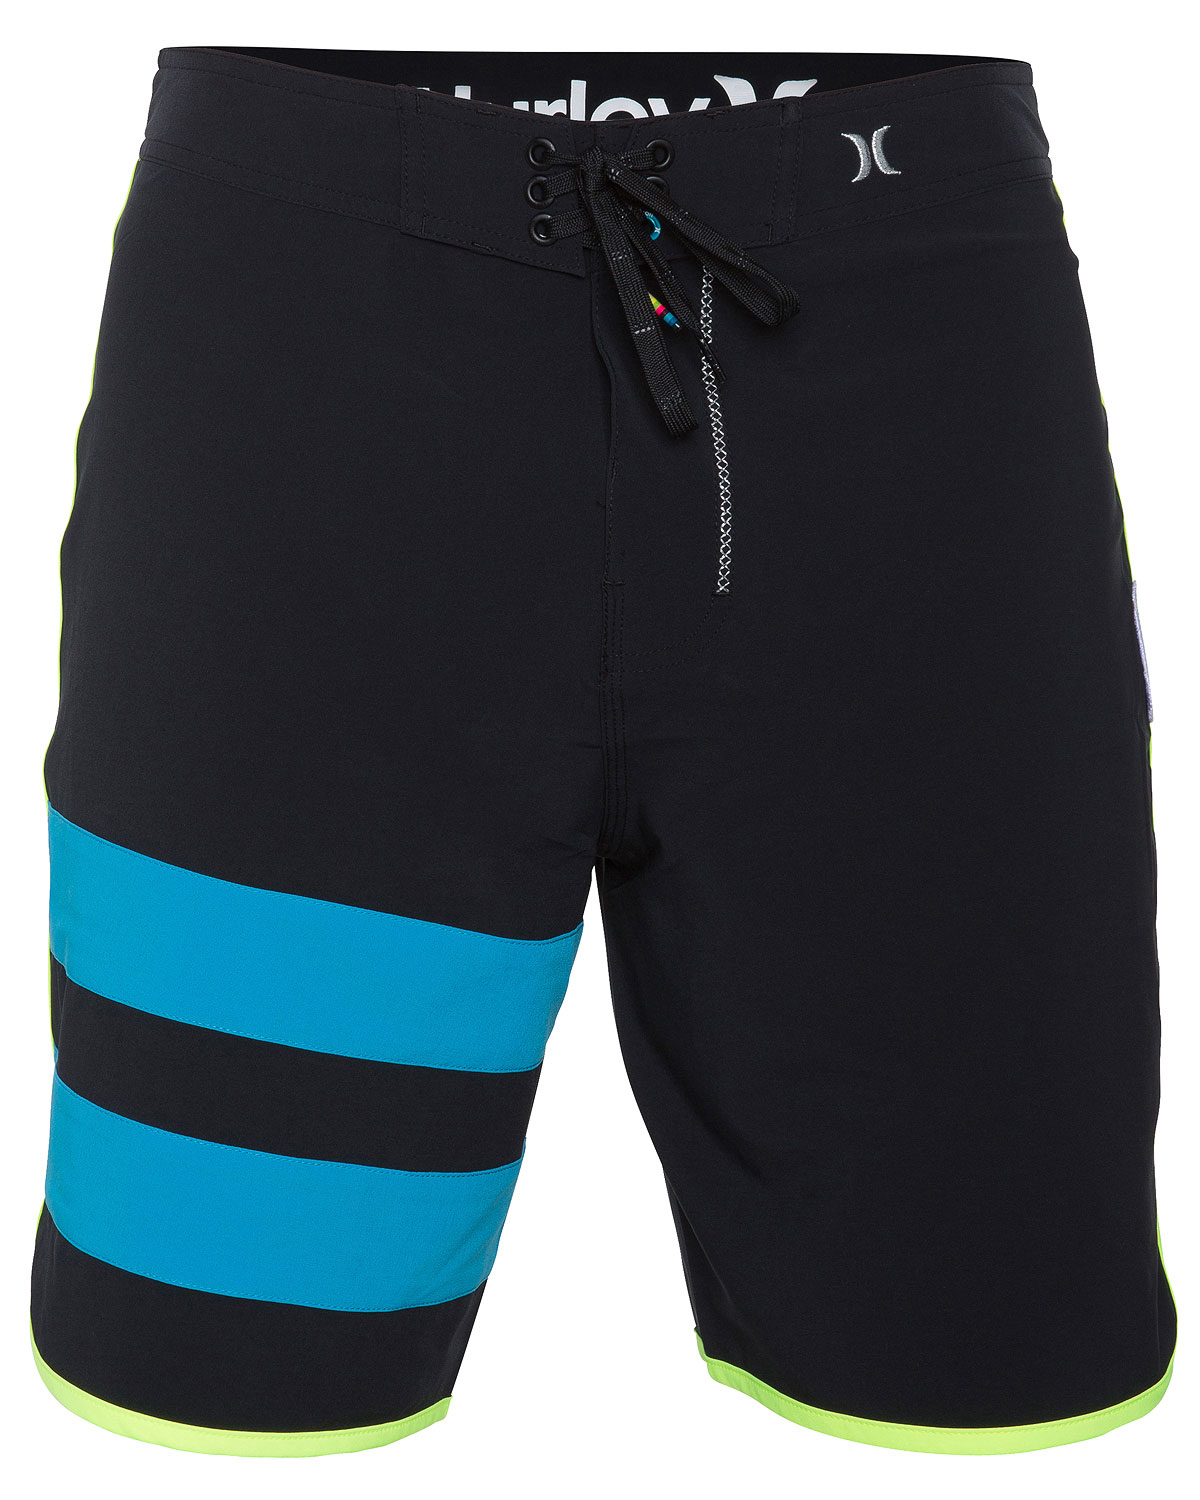 "Surf Key Features of the Hurley Phantom 60 Block Party Solid Boardshorts: 19"" true performance fit Recycled phantom 60% stretch Patented ez fly closure Signature foil branding Metallic embroidery Logo patch Performance water repellency No inseam and patch pocket with pocket flap - $38.95"